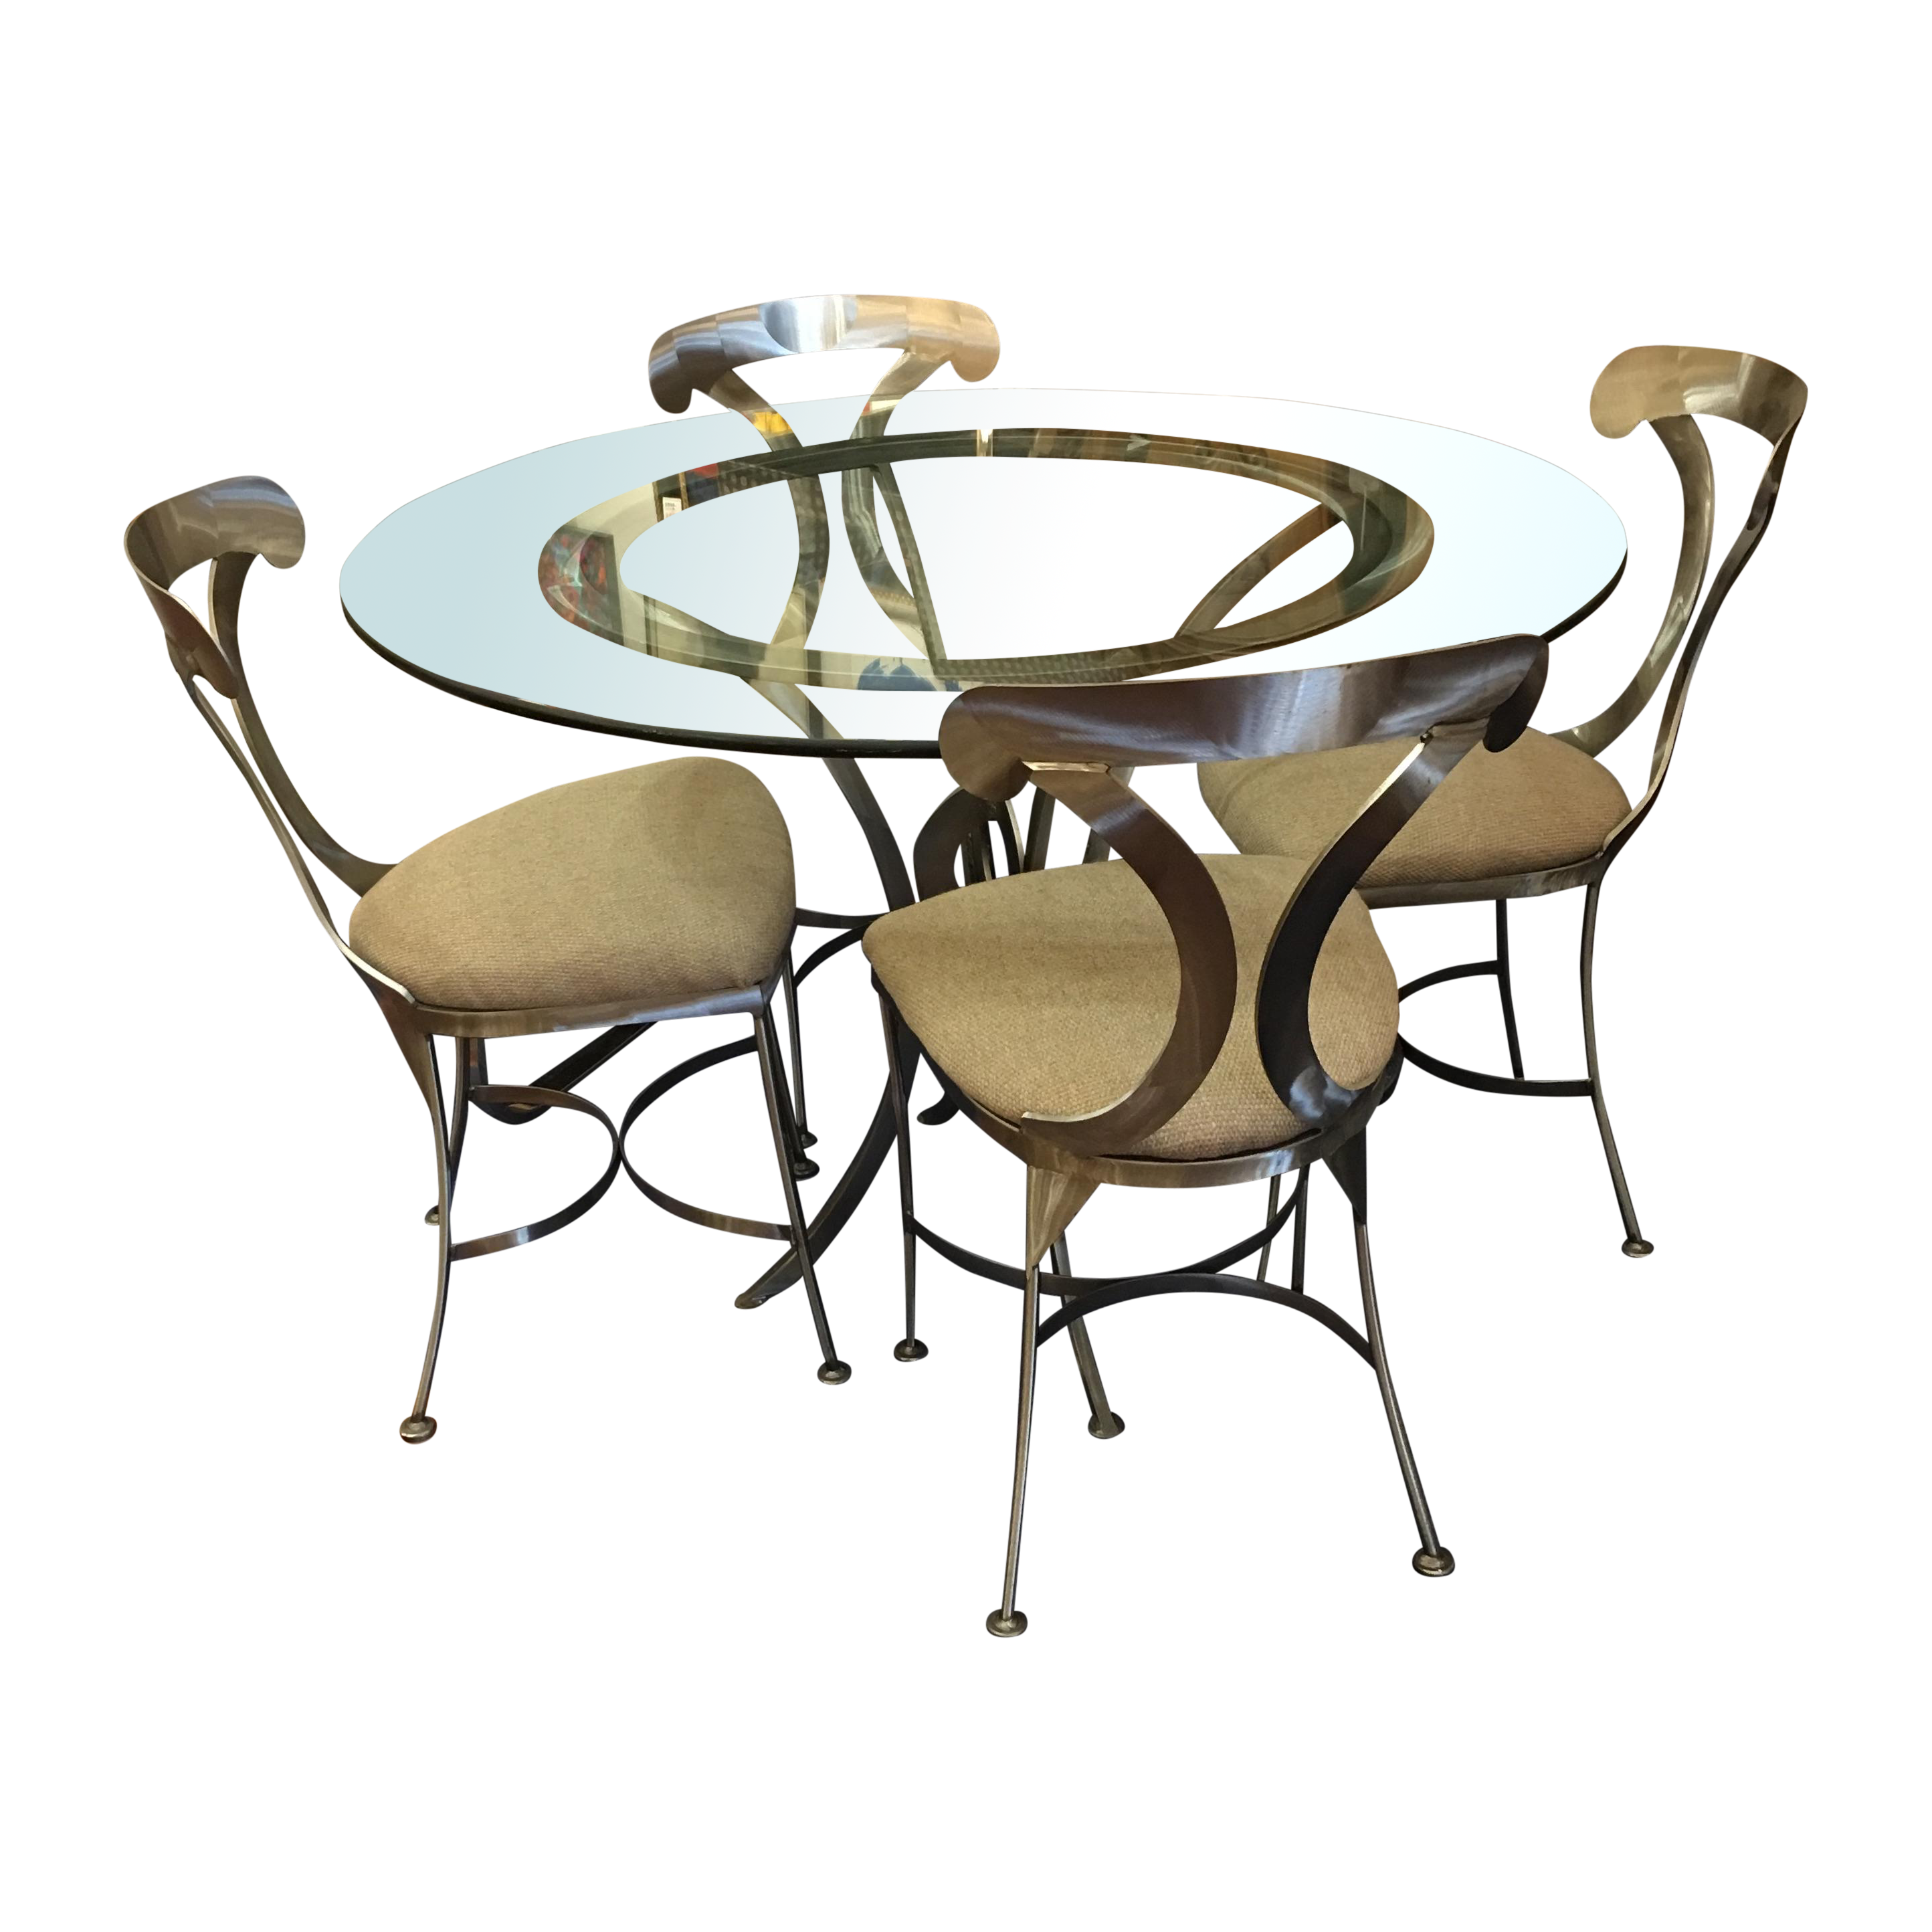 ... Brushed Stainless Steel Dining Table Topped With Thick Round Glass Will  Seat Four To Five Ever So Comfortably. The Four Matching Chairs Are  Comfortably ...